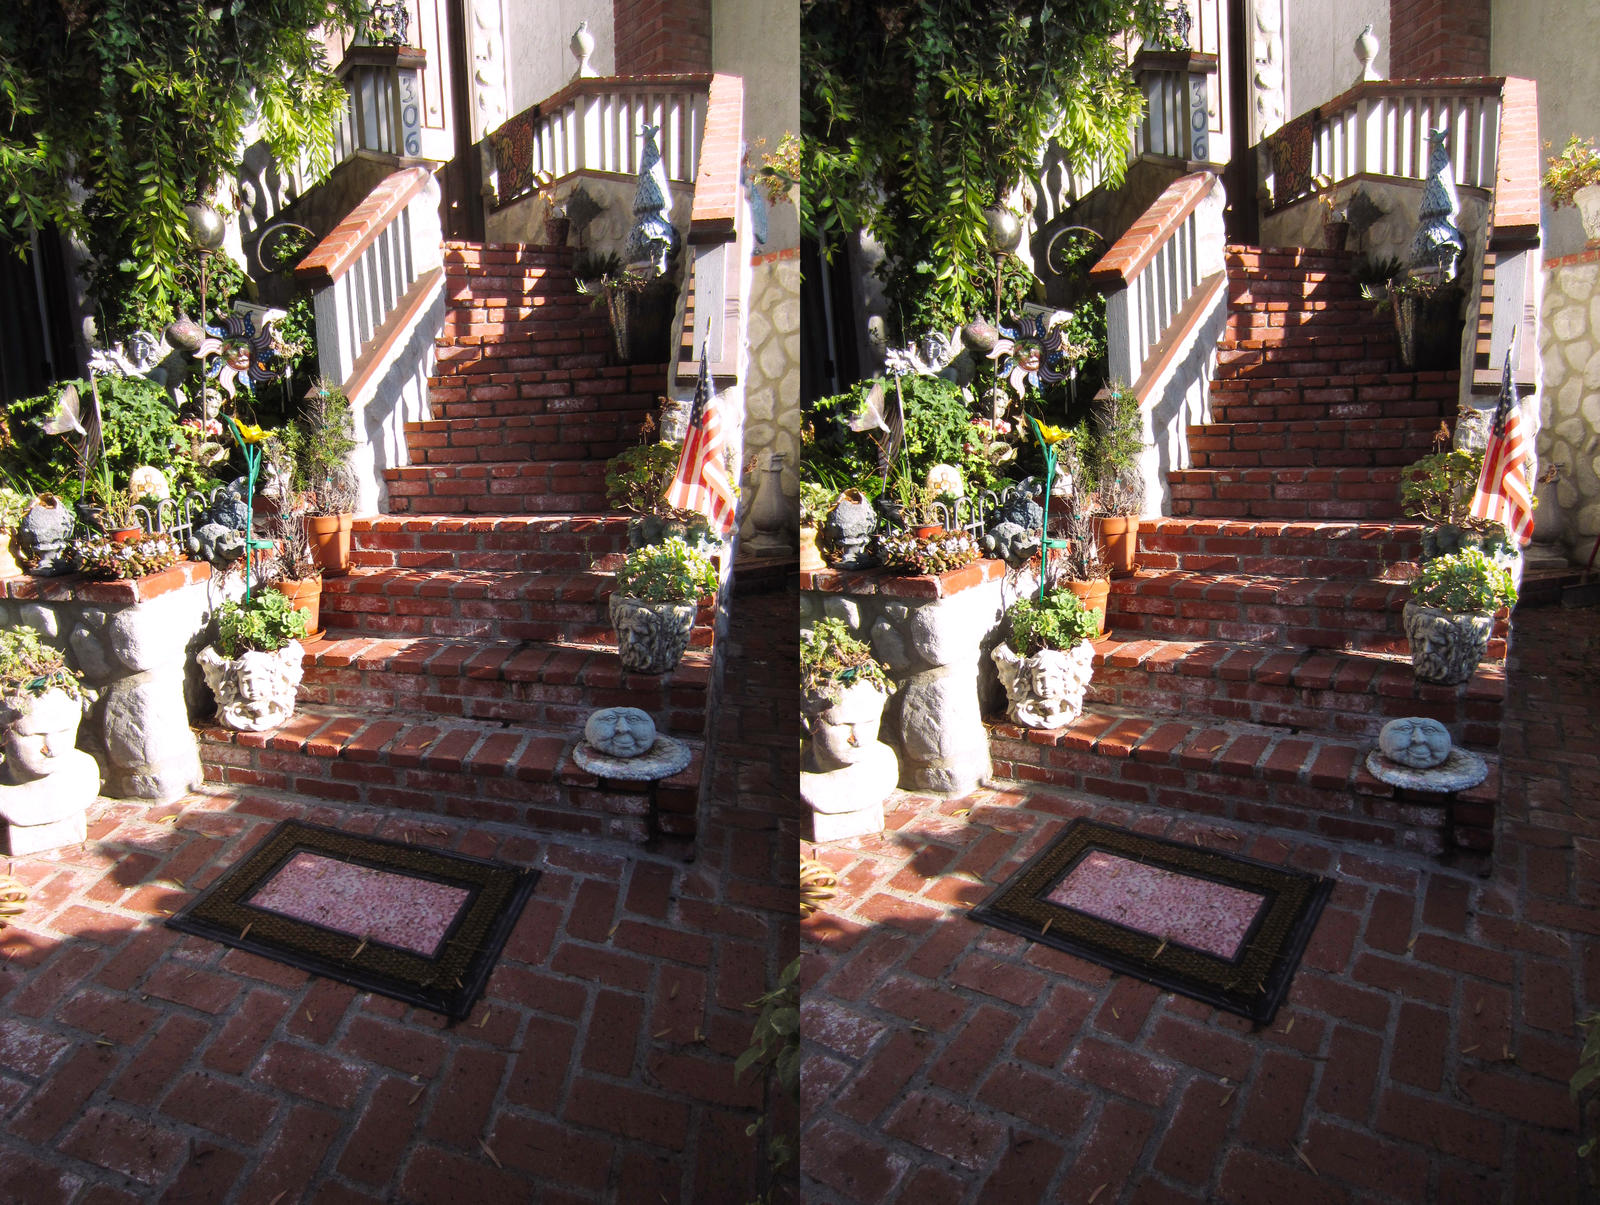 Stereograph - Brick Steps by alanbecker